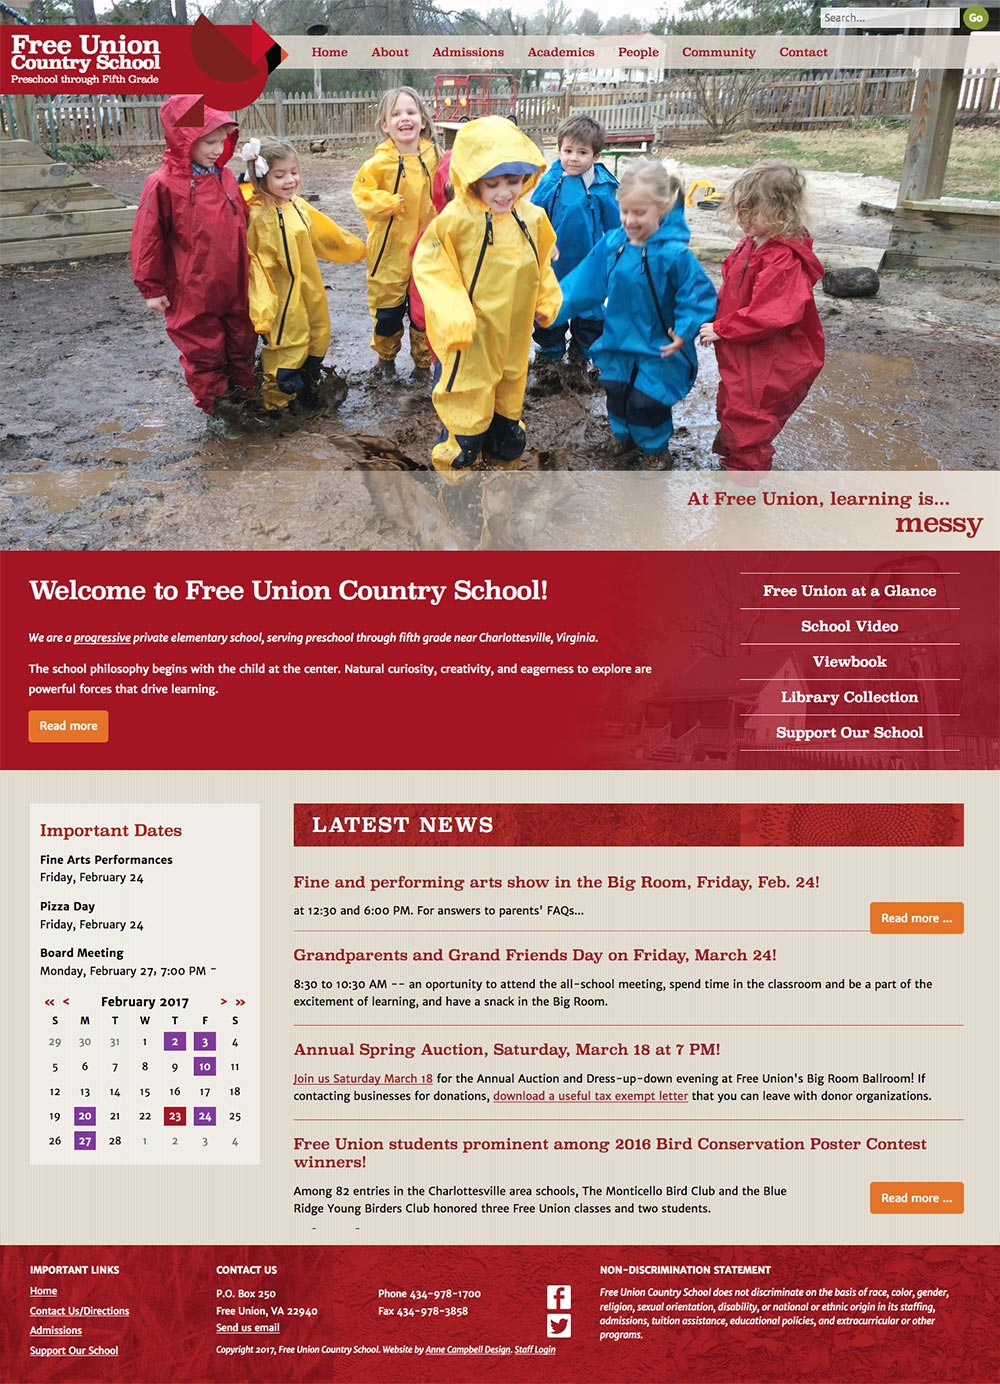 Free Union Country School